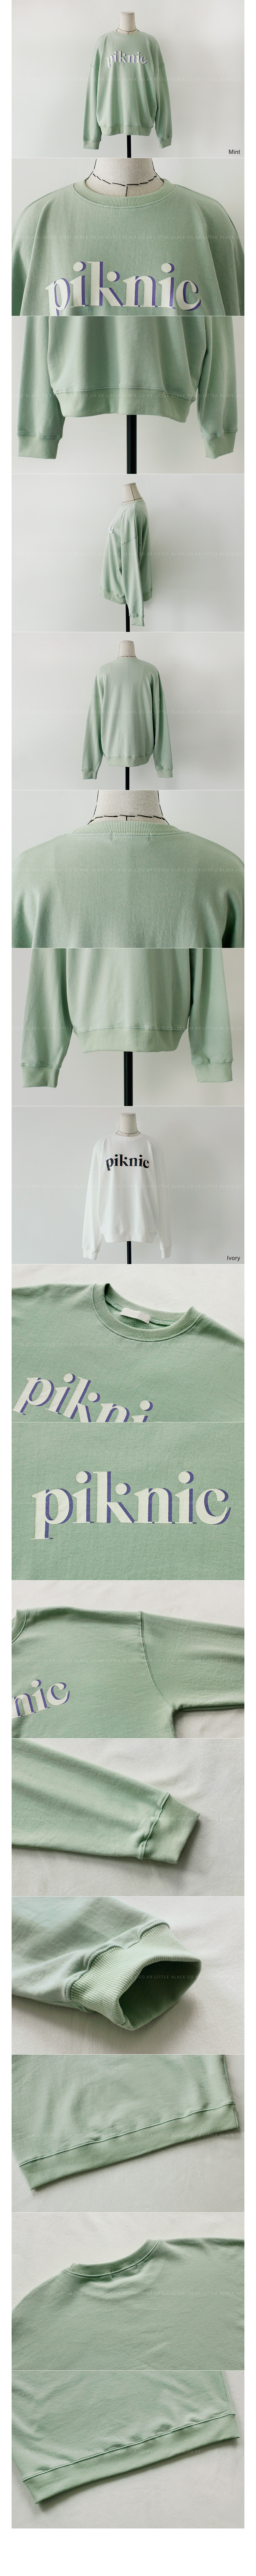 PIKNIC Graphic Print Sweatshirt|